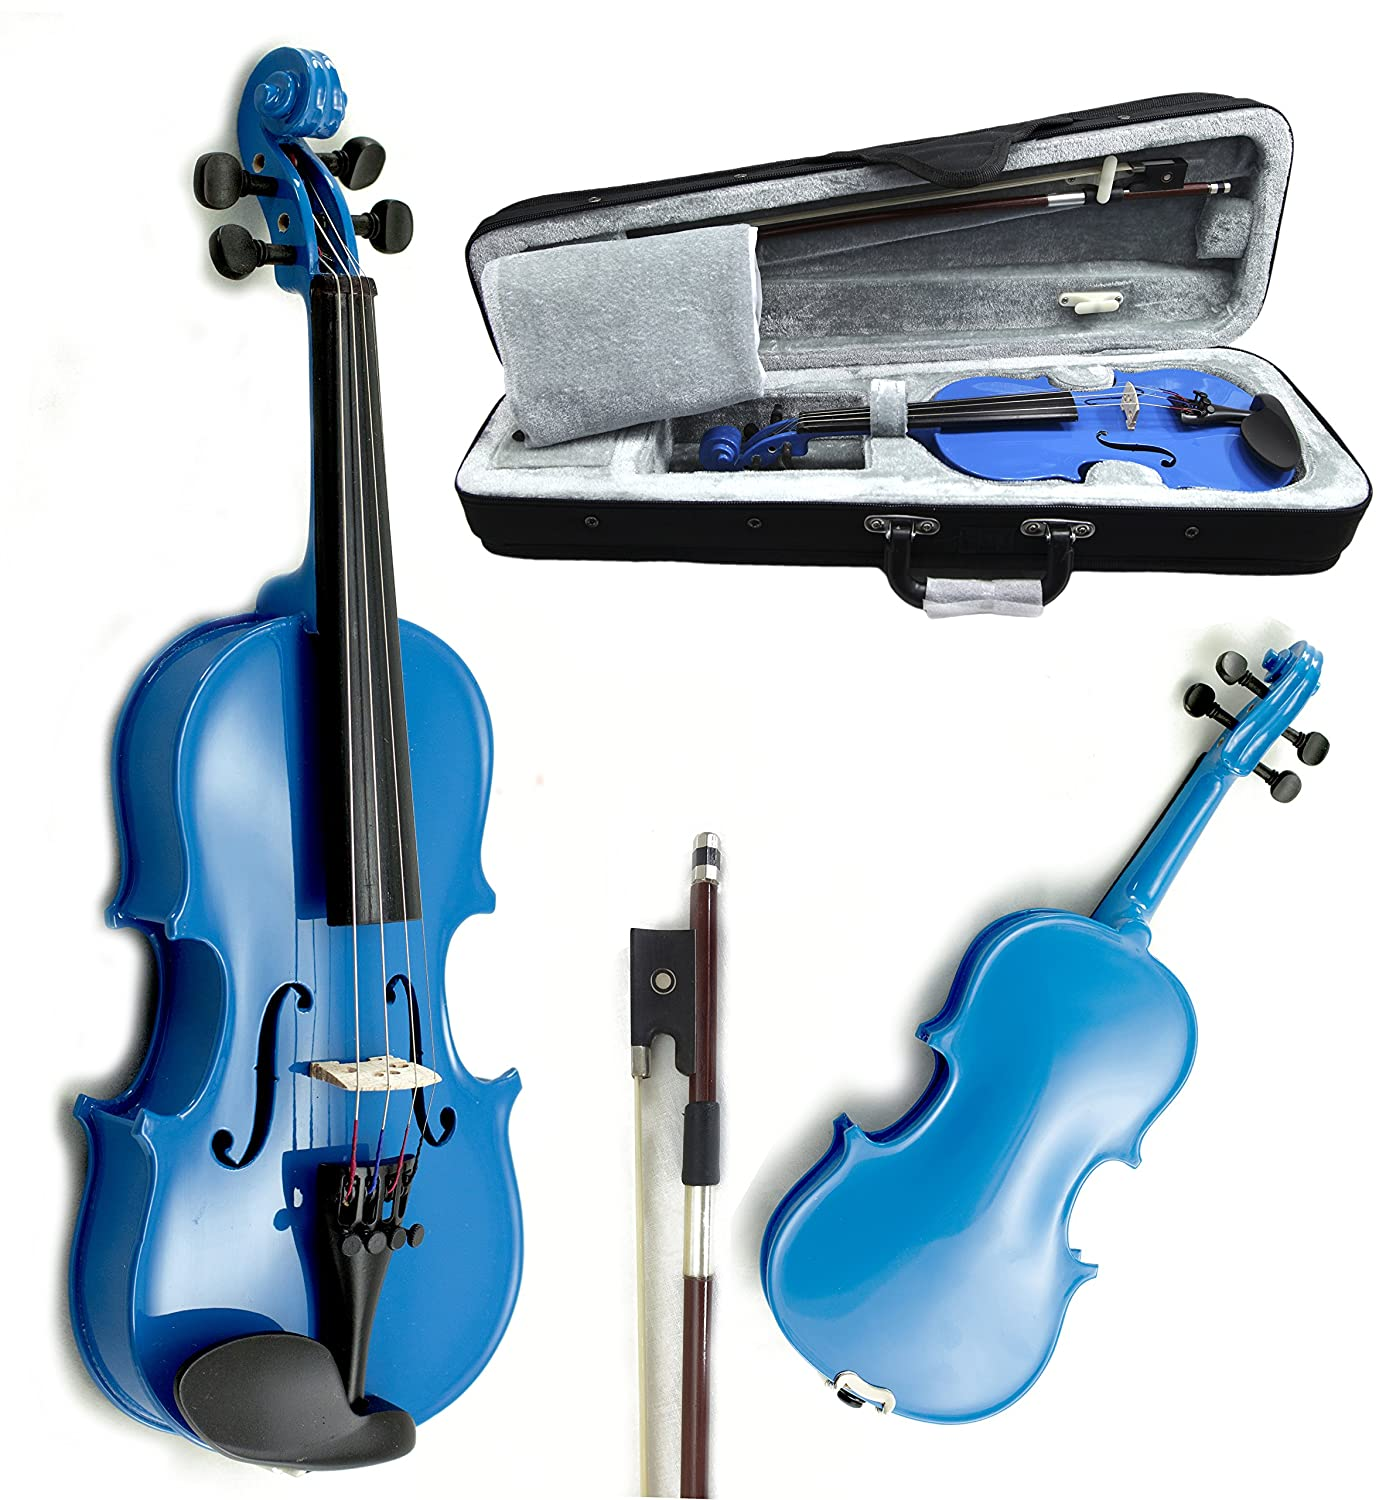 Top 7 Best Violin for Kids Reviews in 2021 6